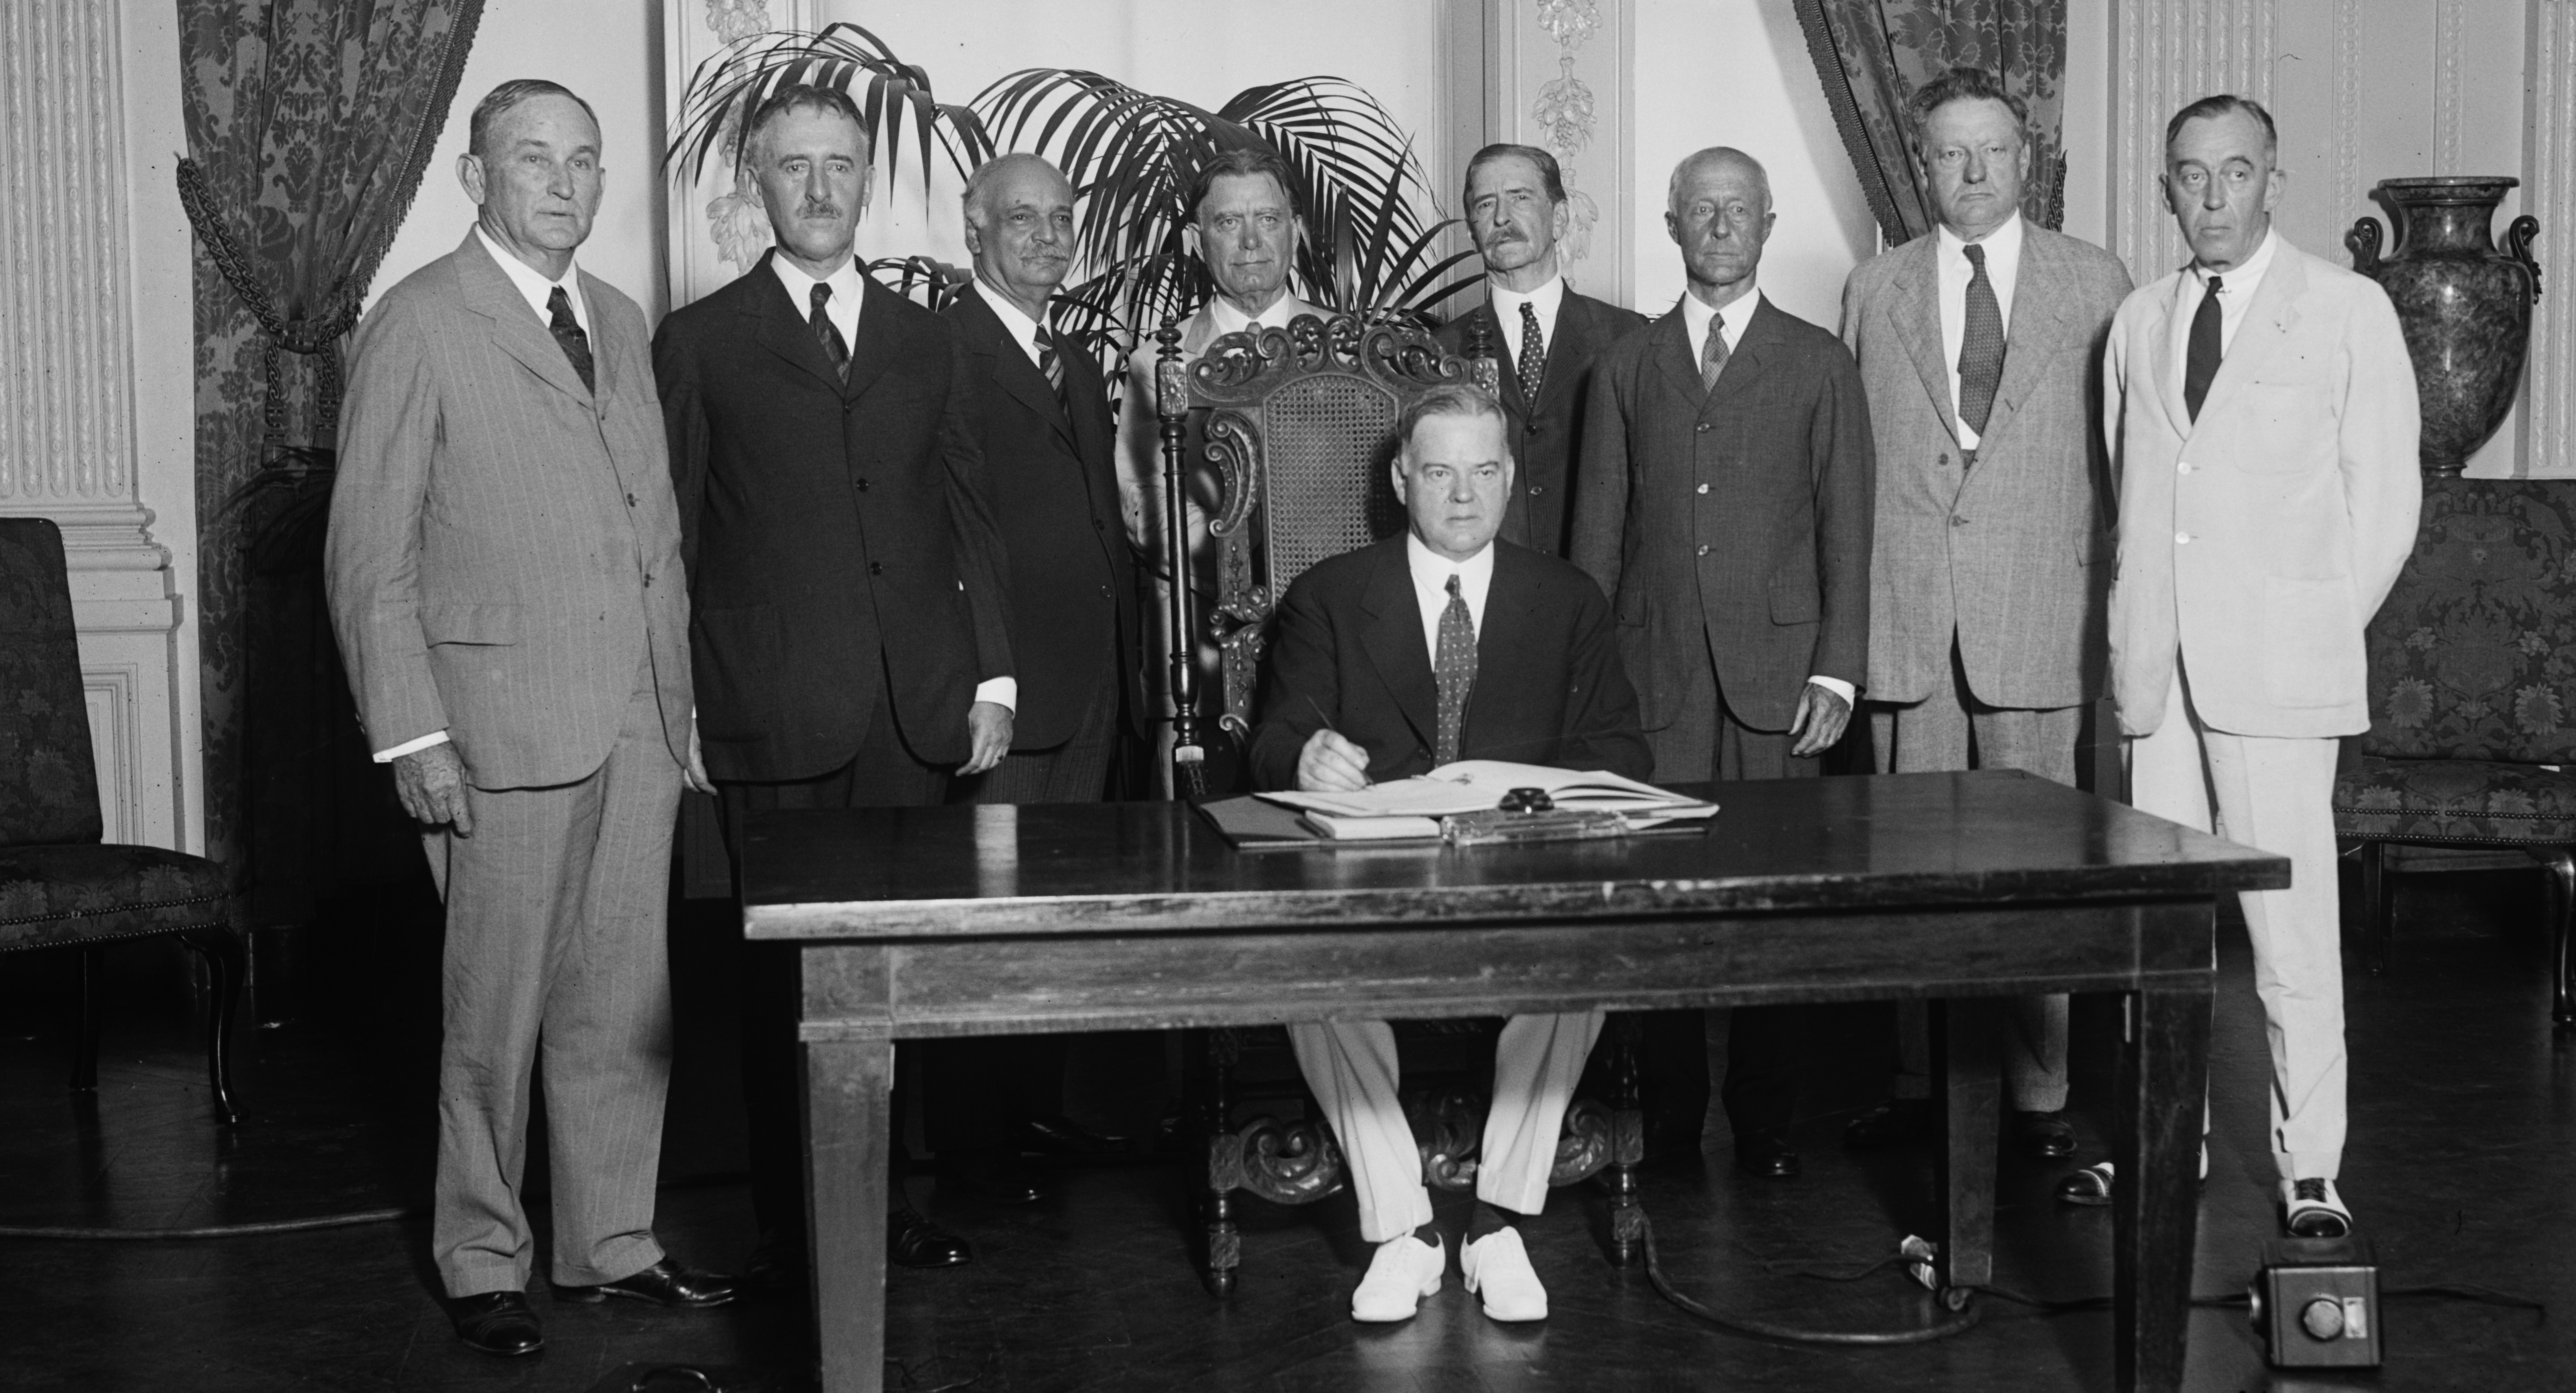 File:Herbert Hoover at desk with group standing behind him.jpg ...